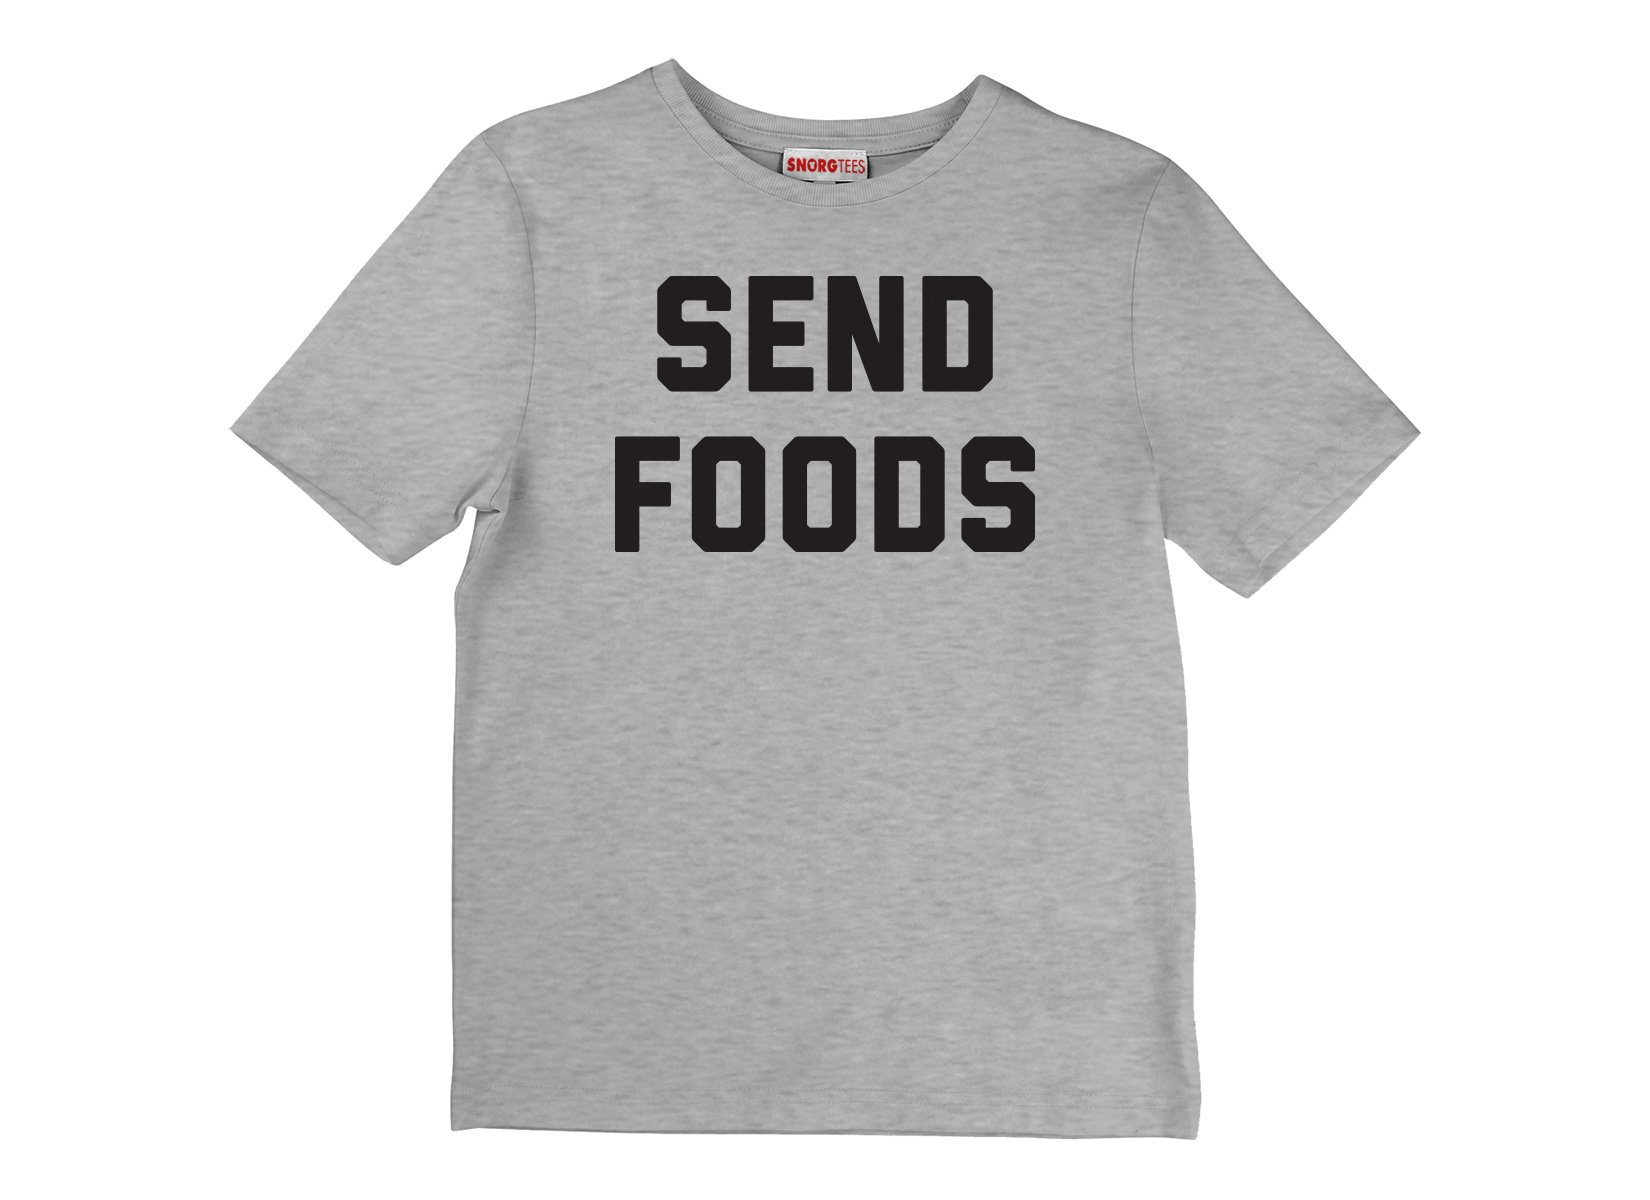 Send Foods on Kids T-Shirt